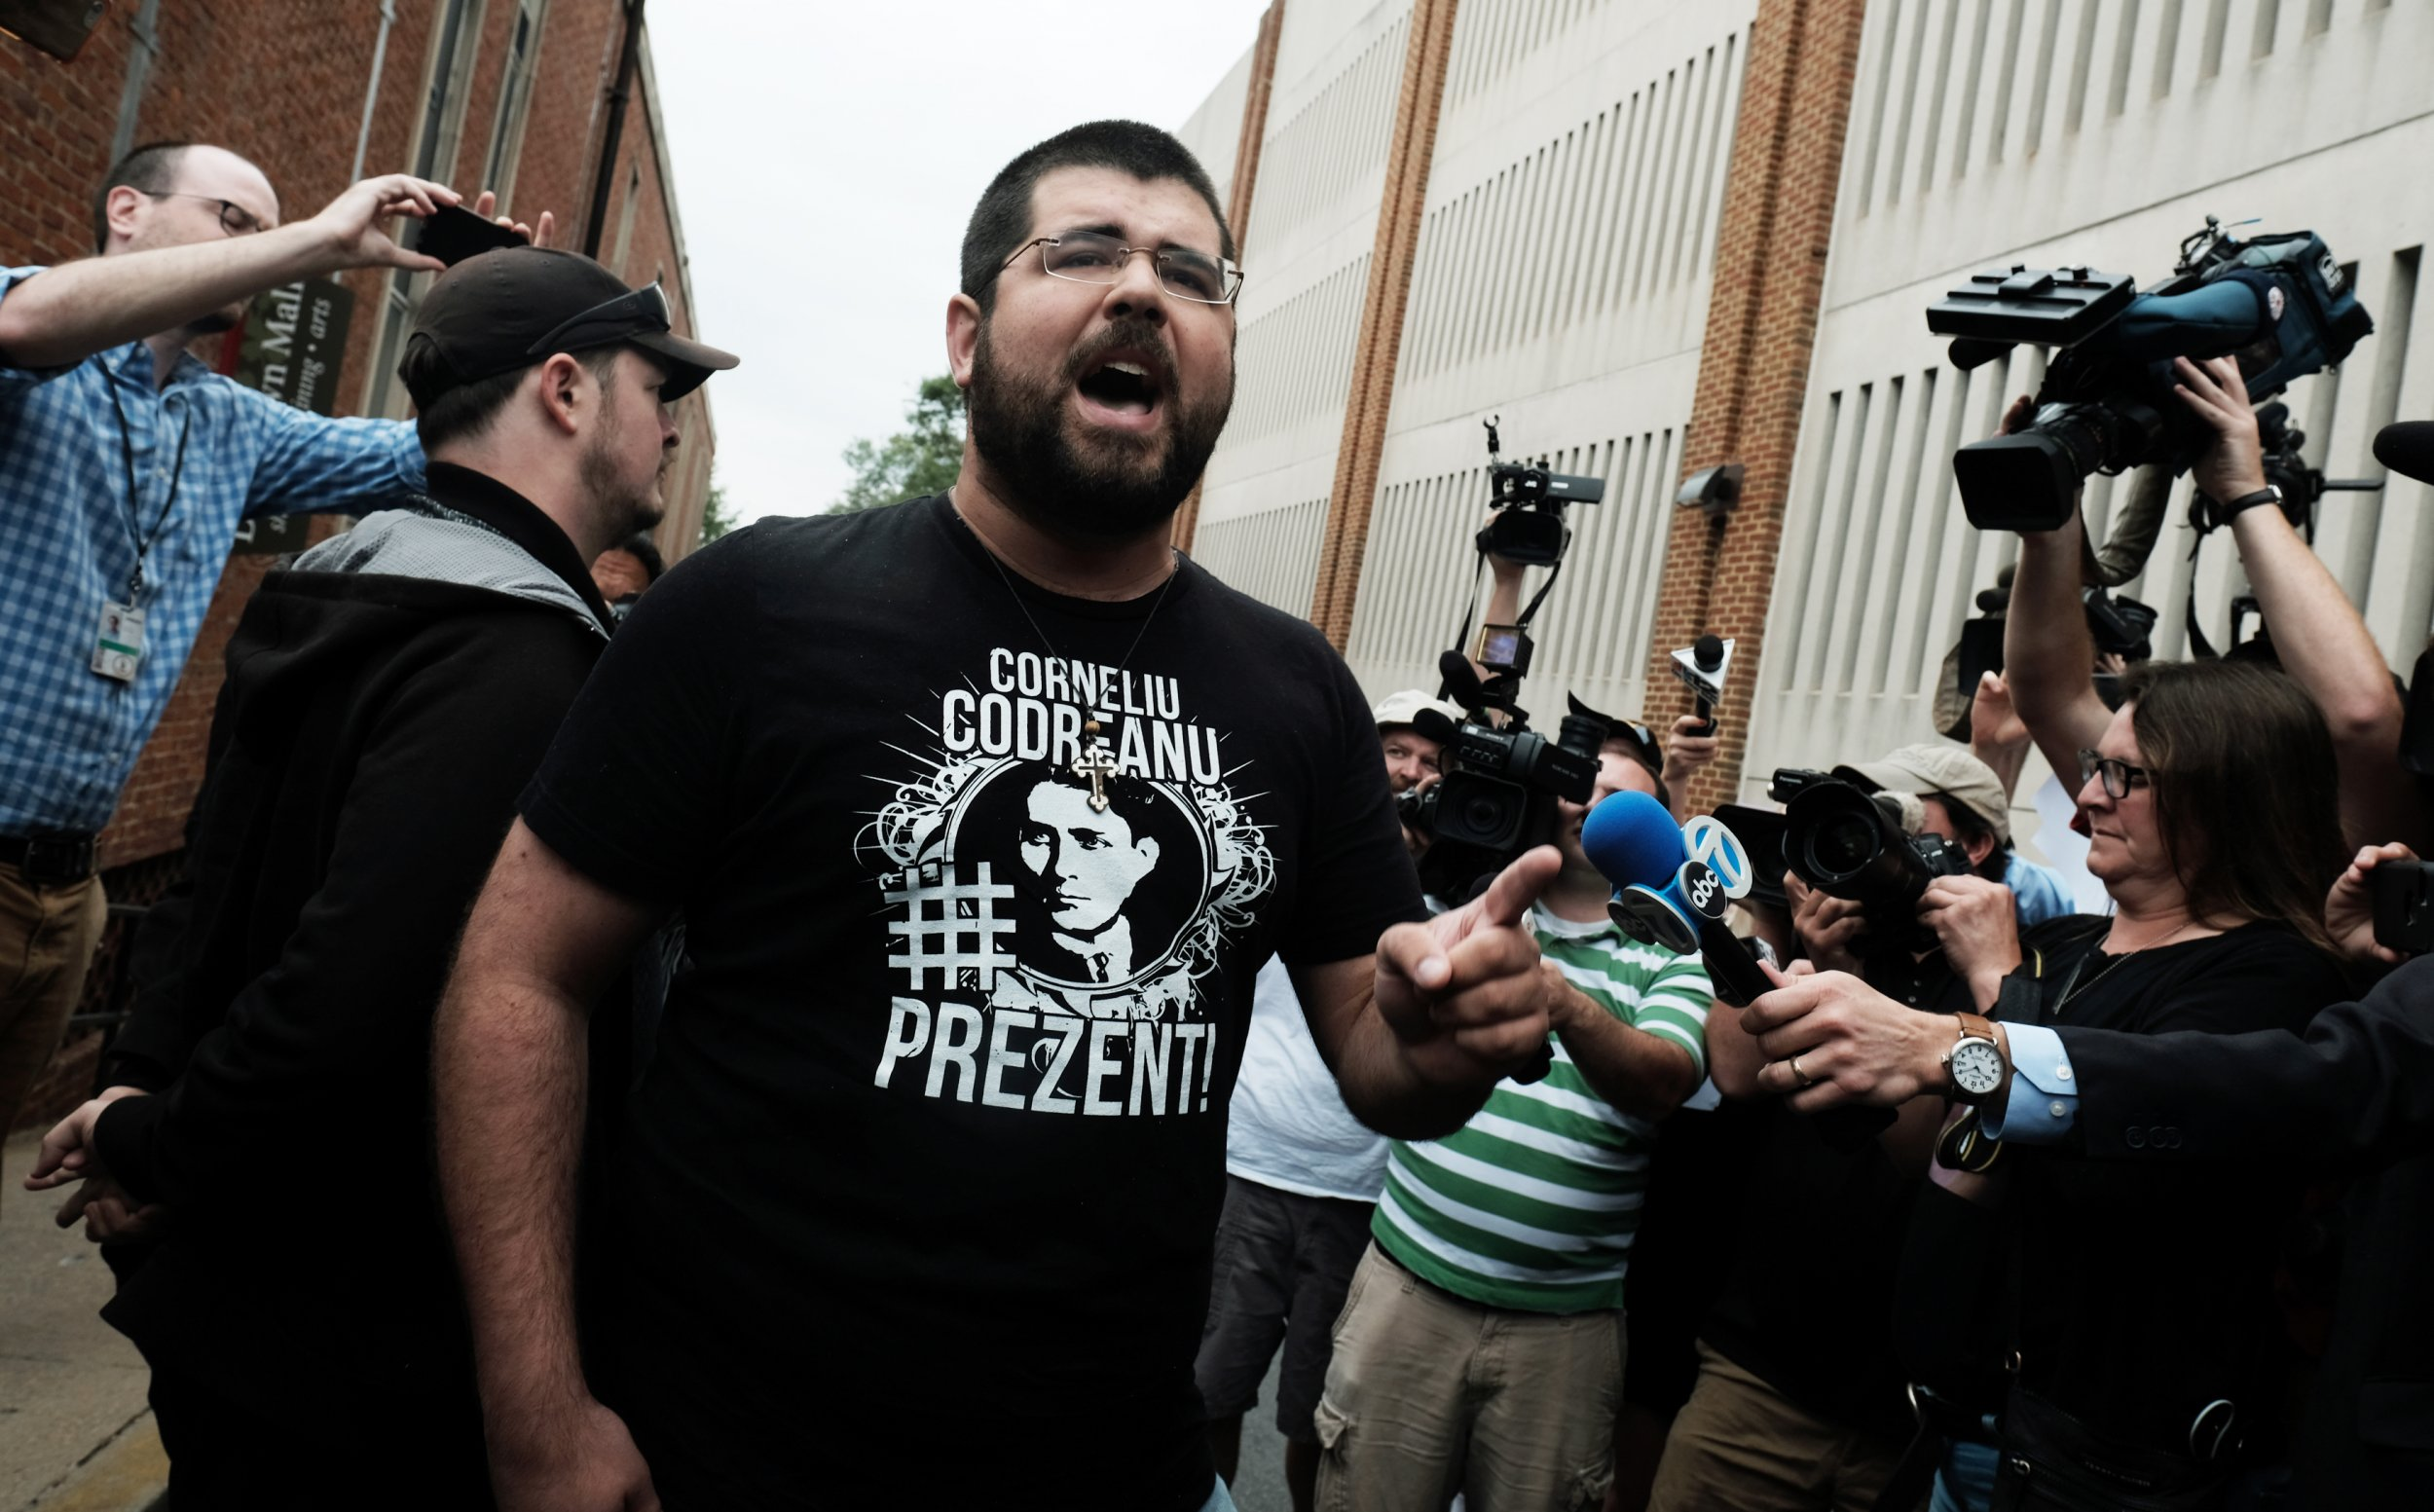 White nationalist leader Matthew Heimbach